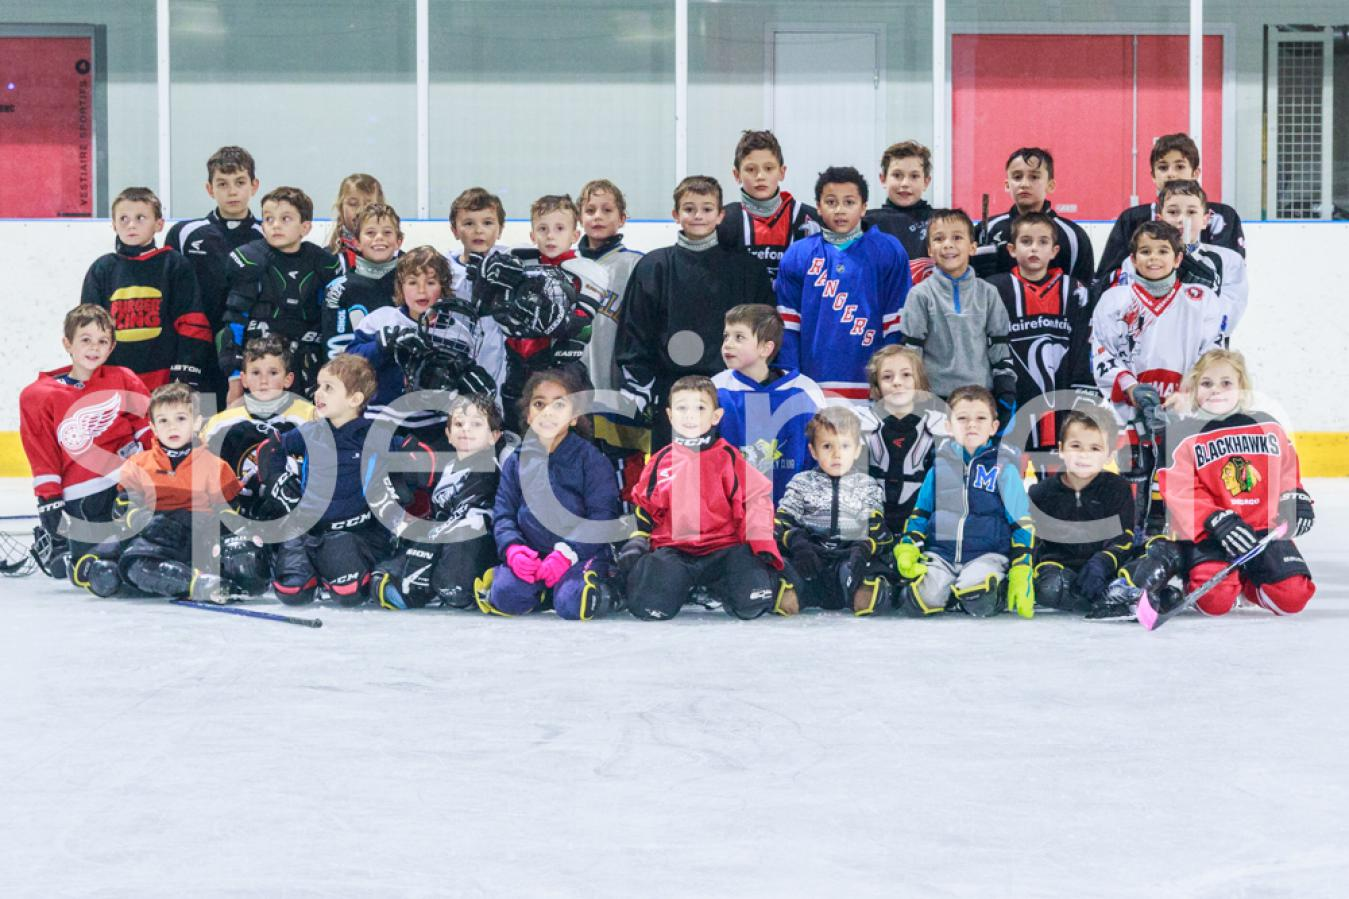 Ecole de Hockey - Toulouse Blagnac Hockey Club